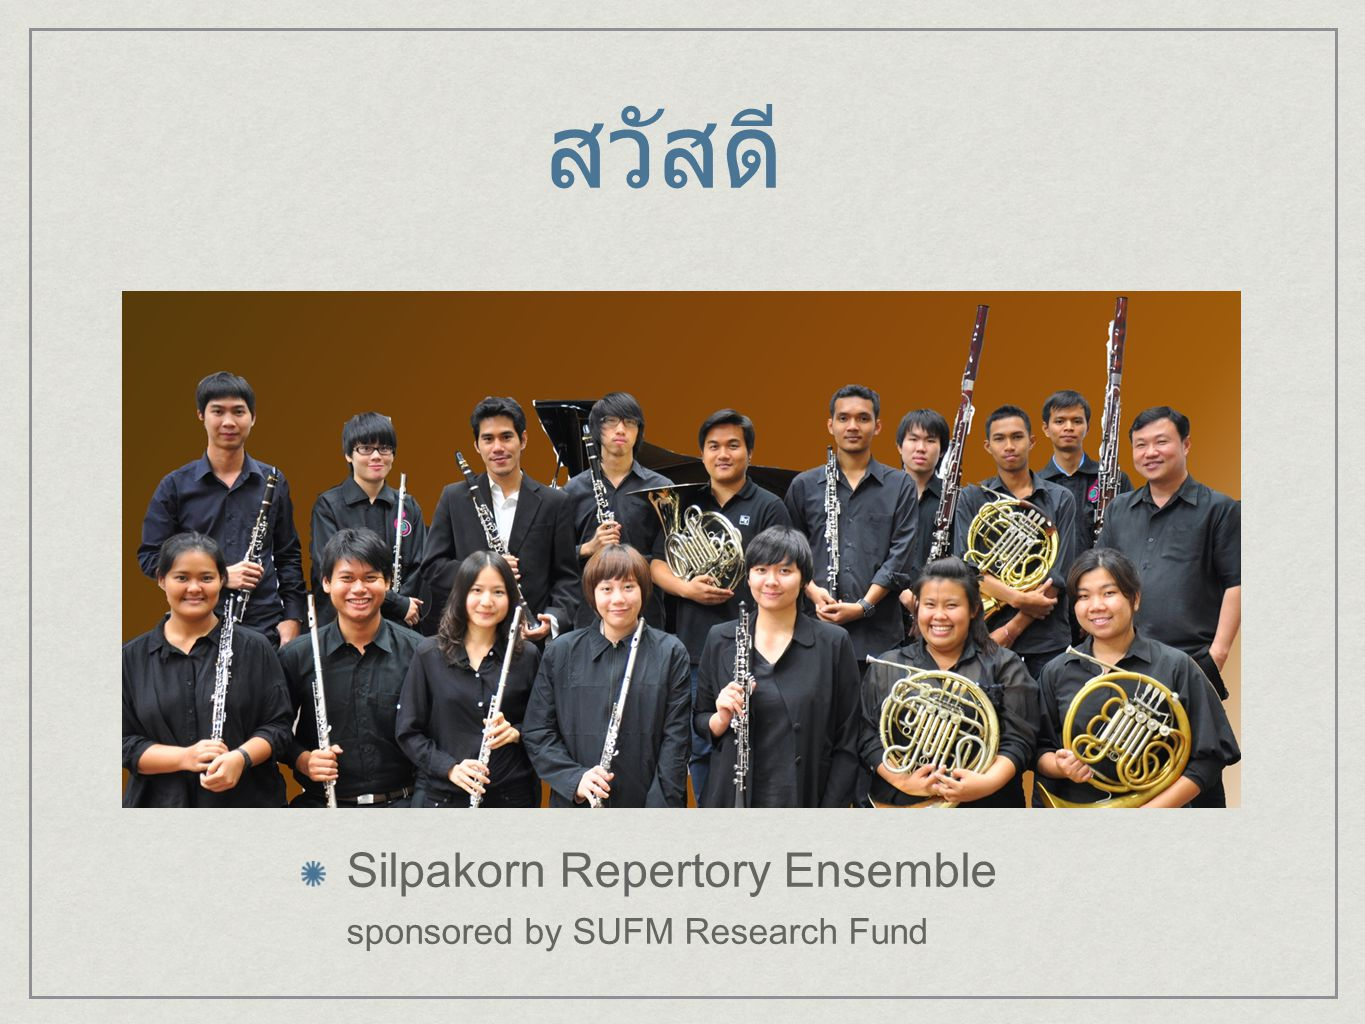 สวัสดี Silpakorn Repertory Ensemble sponsored by SUFM Research Fund